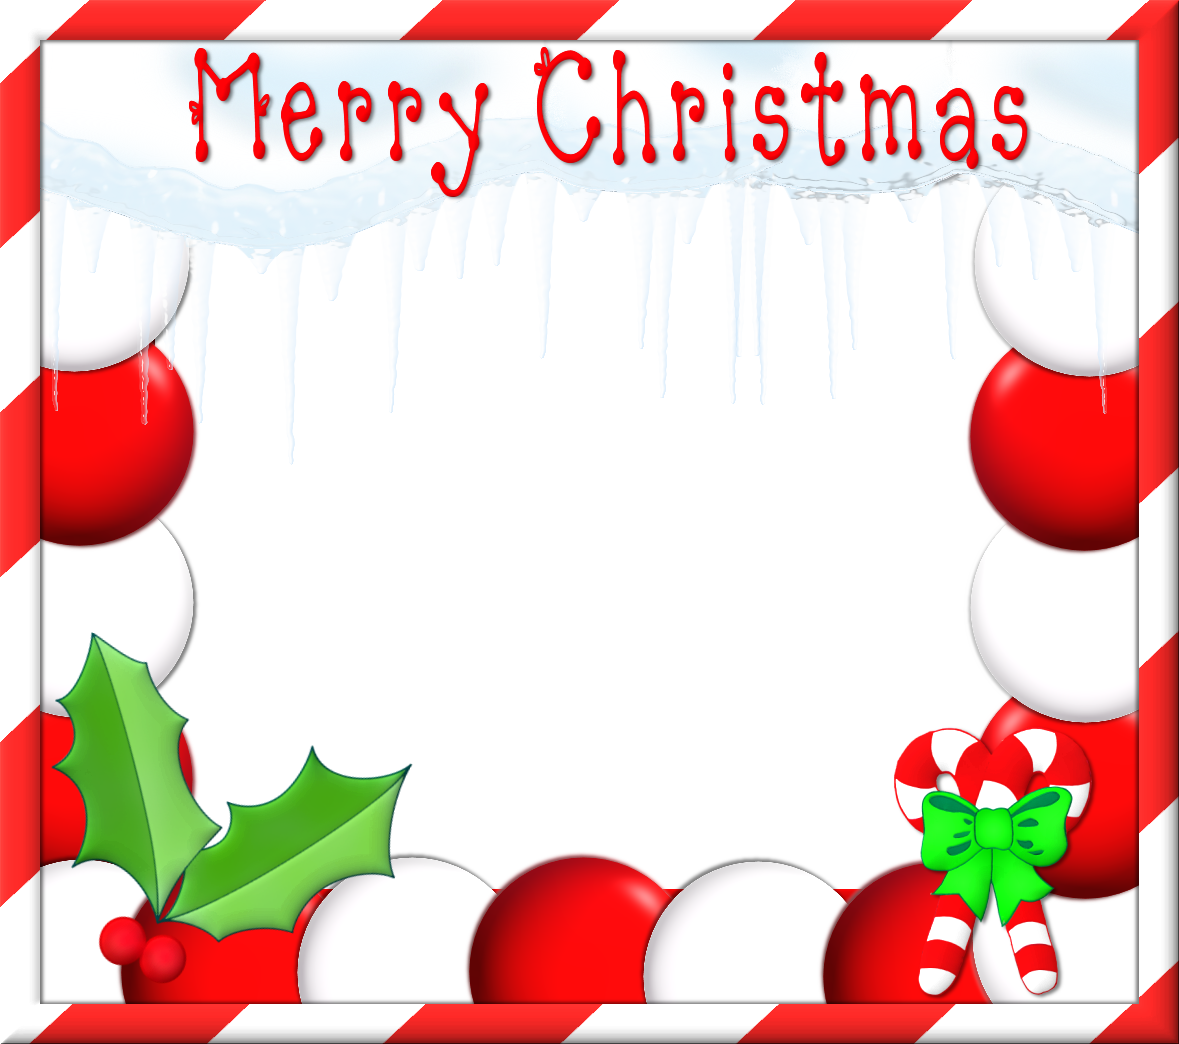 Christmas clipart free borders picture royalty free download Christmas Borders And Frames Clipart - Clipart Kid picture royalty free download